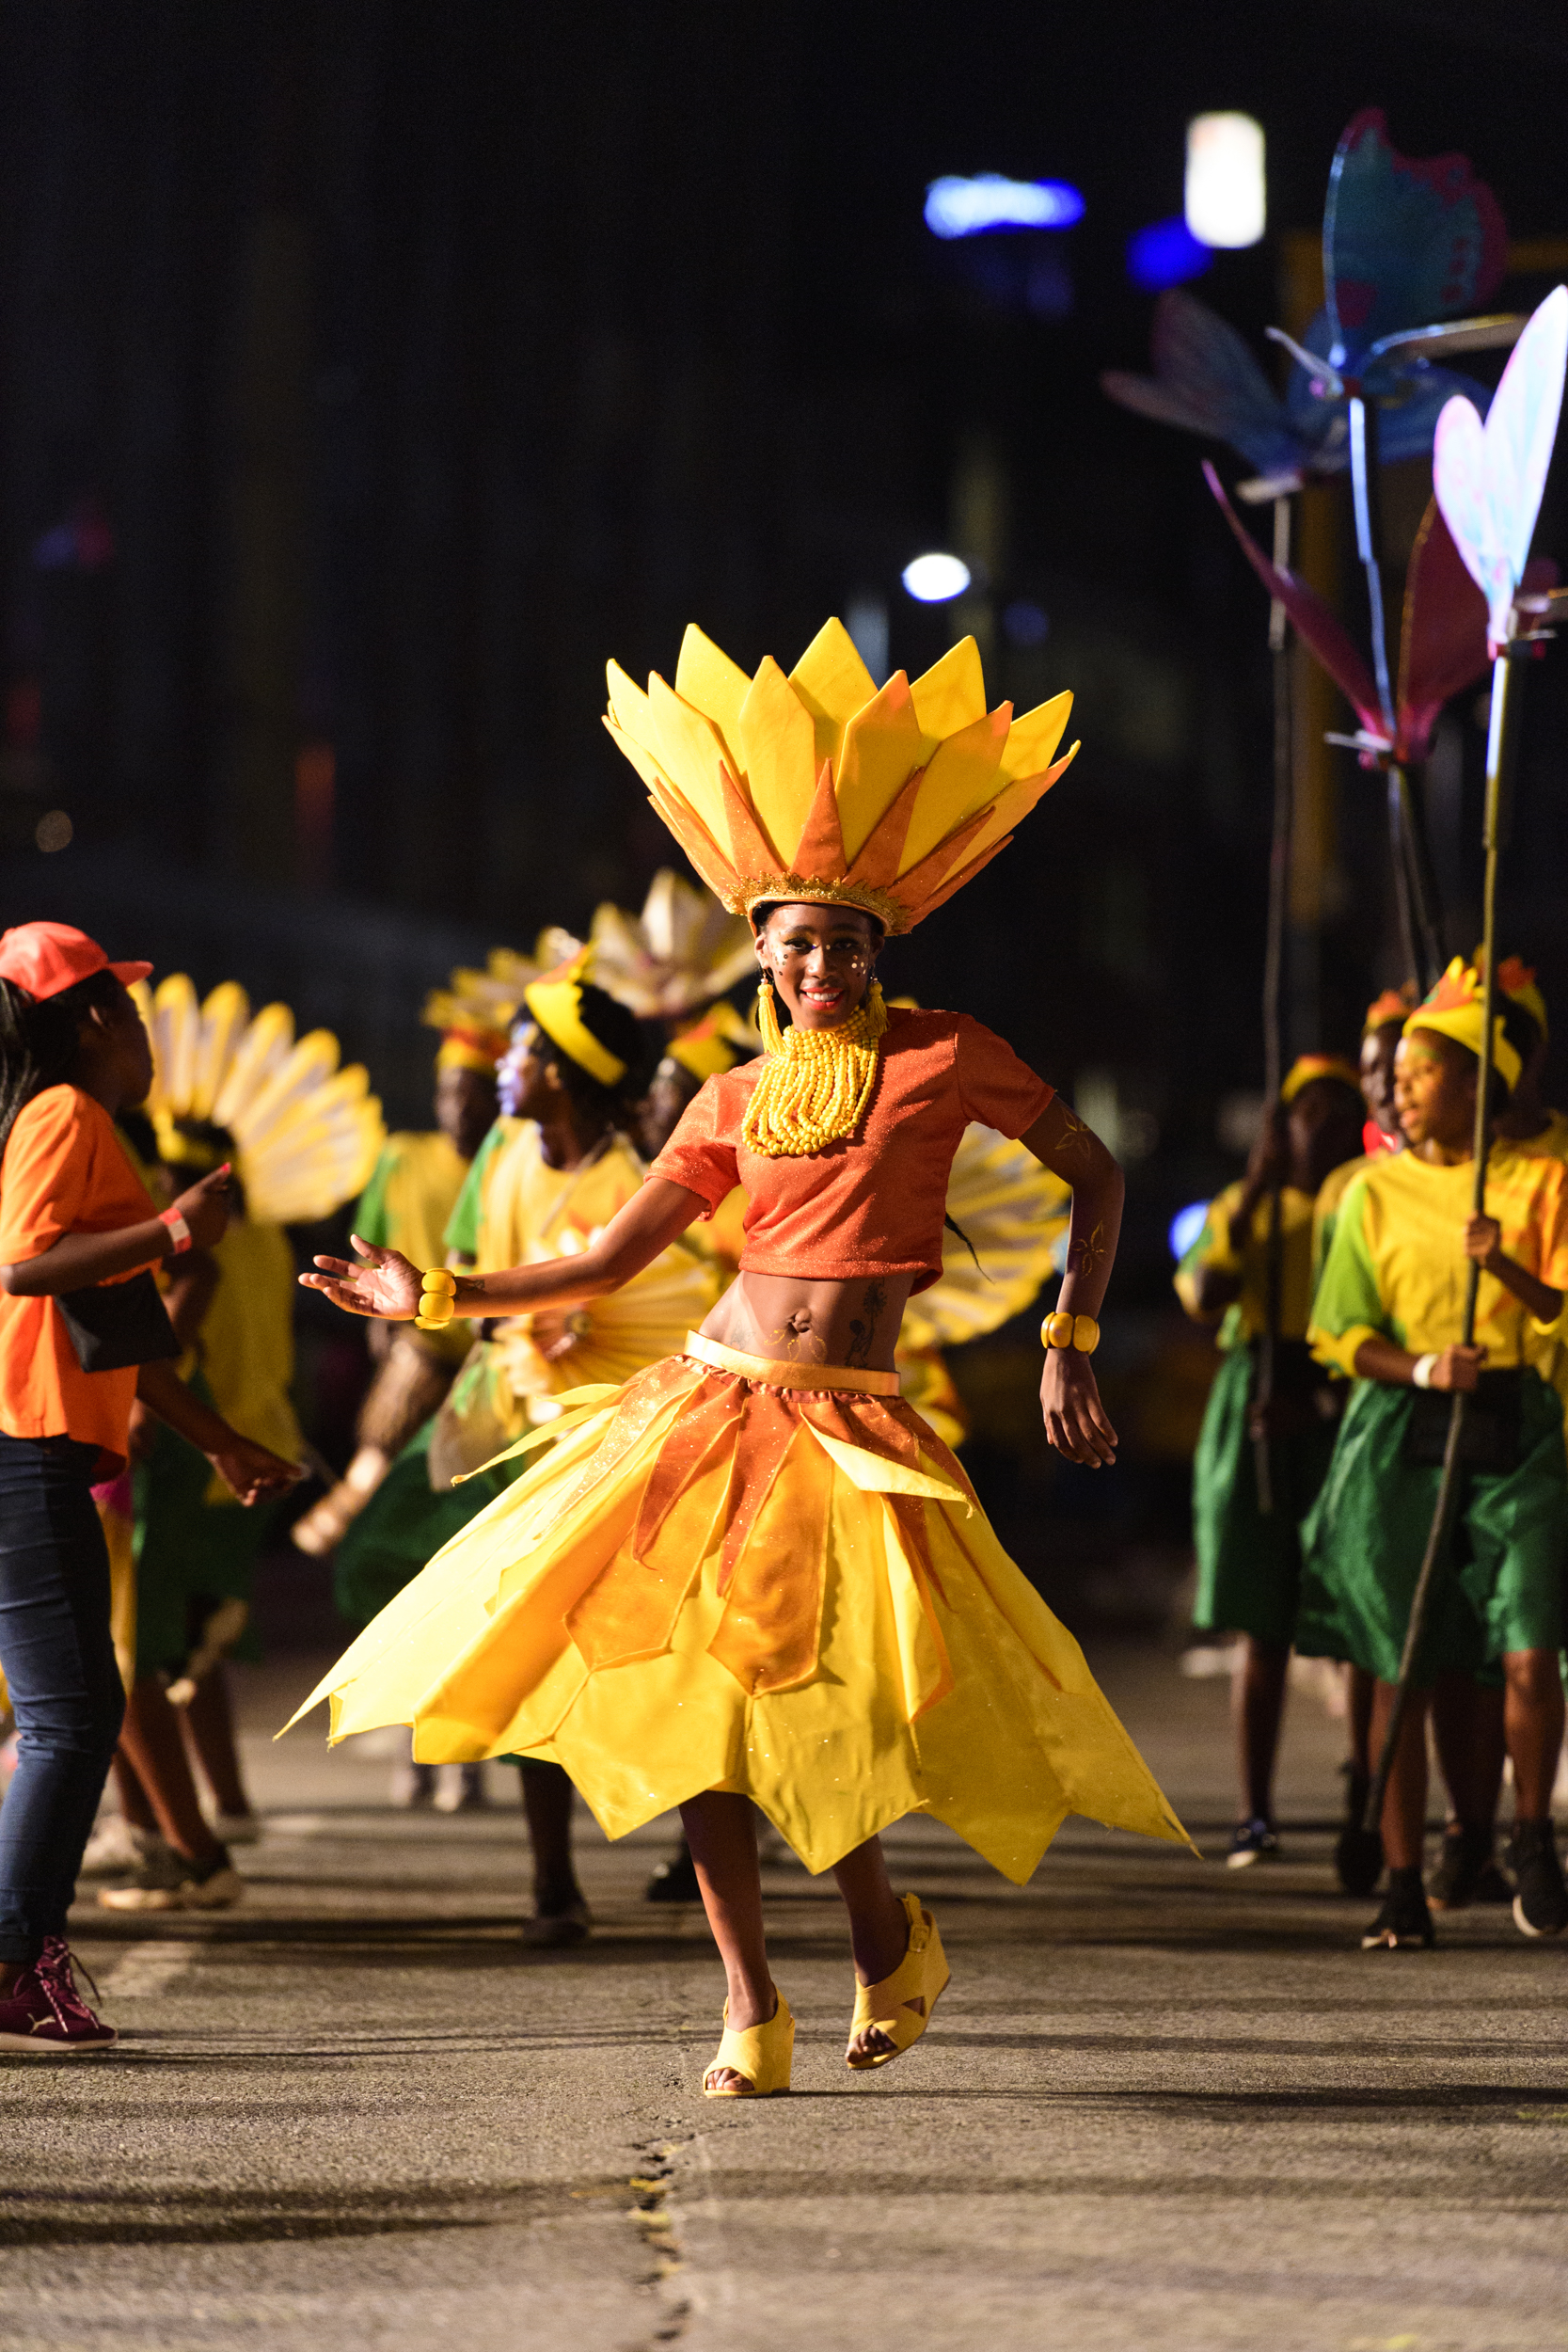 Cape Town Carnival celebrates the hero in each of us